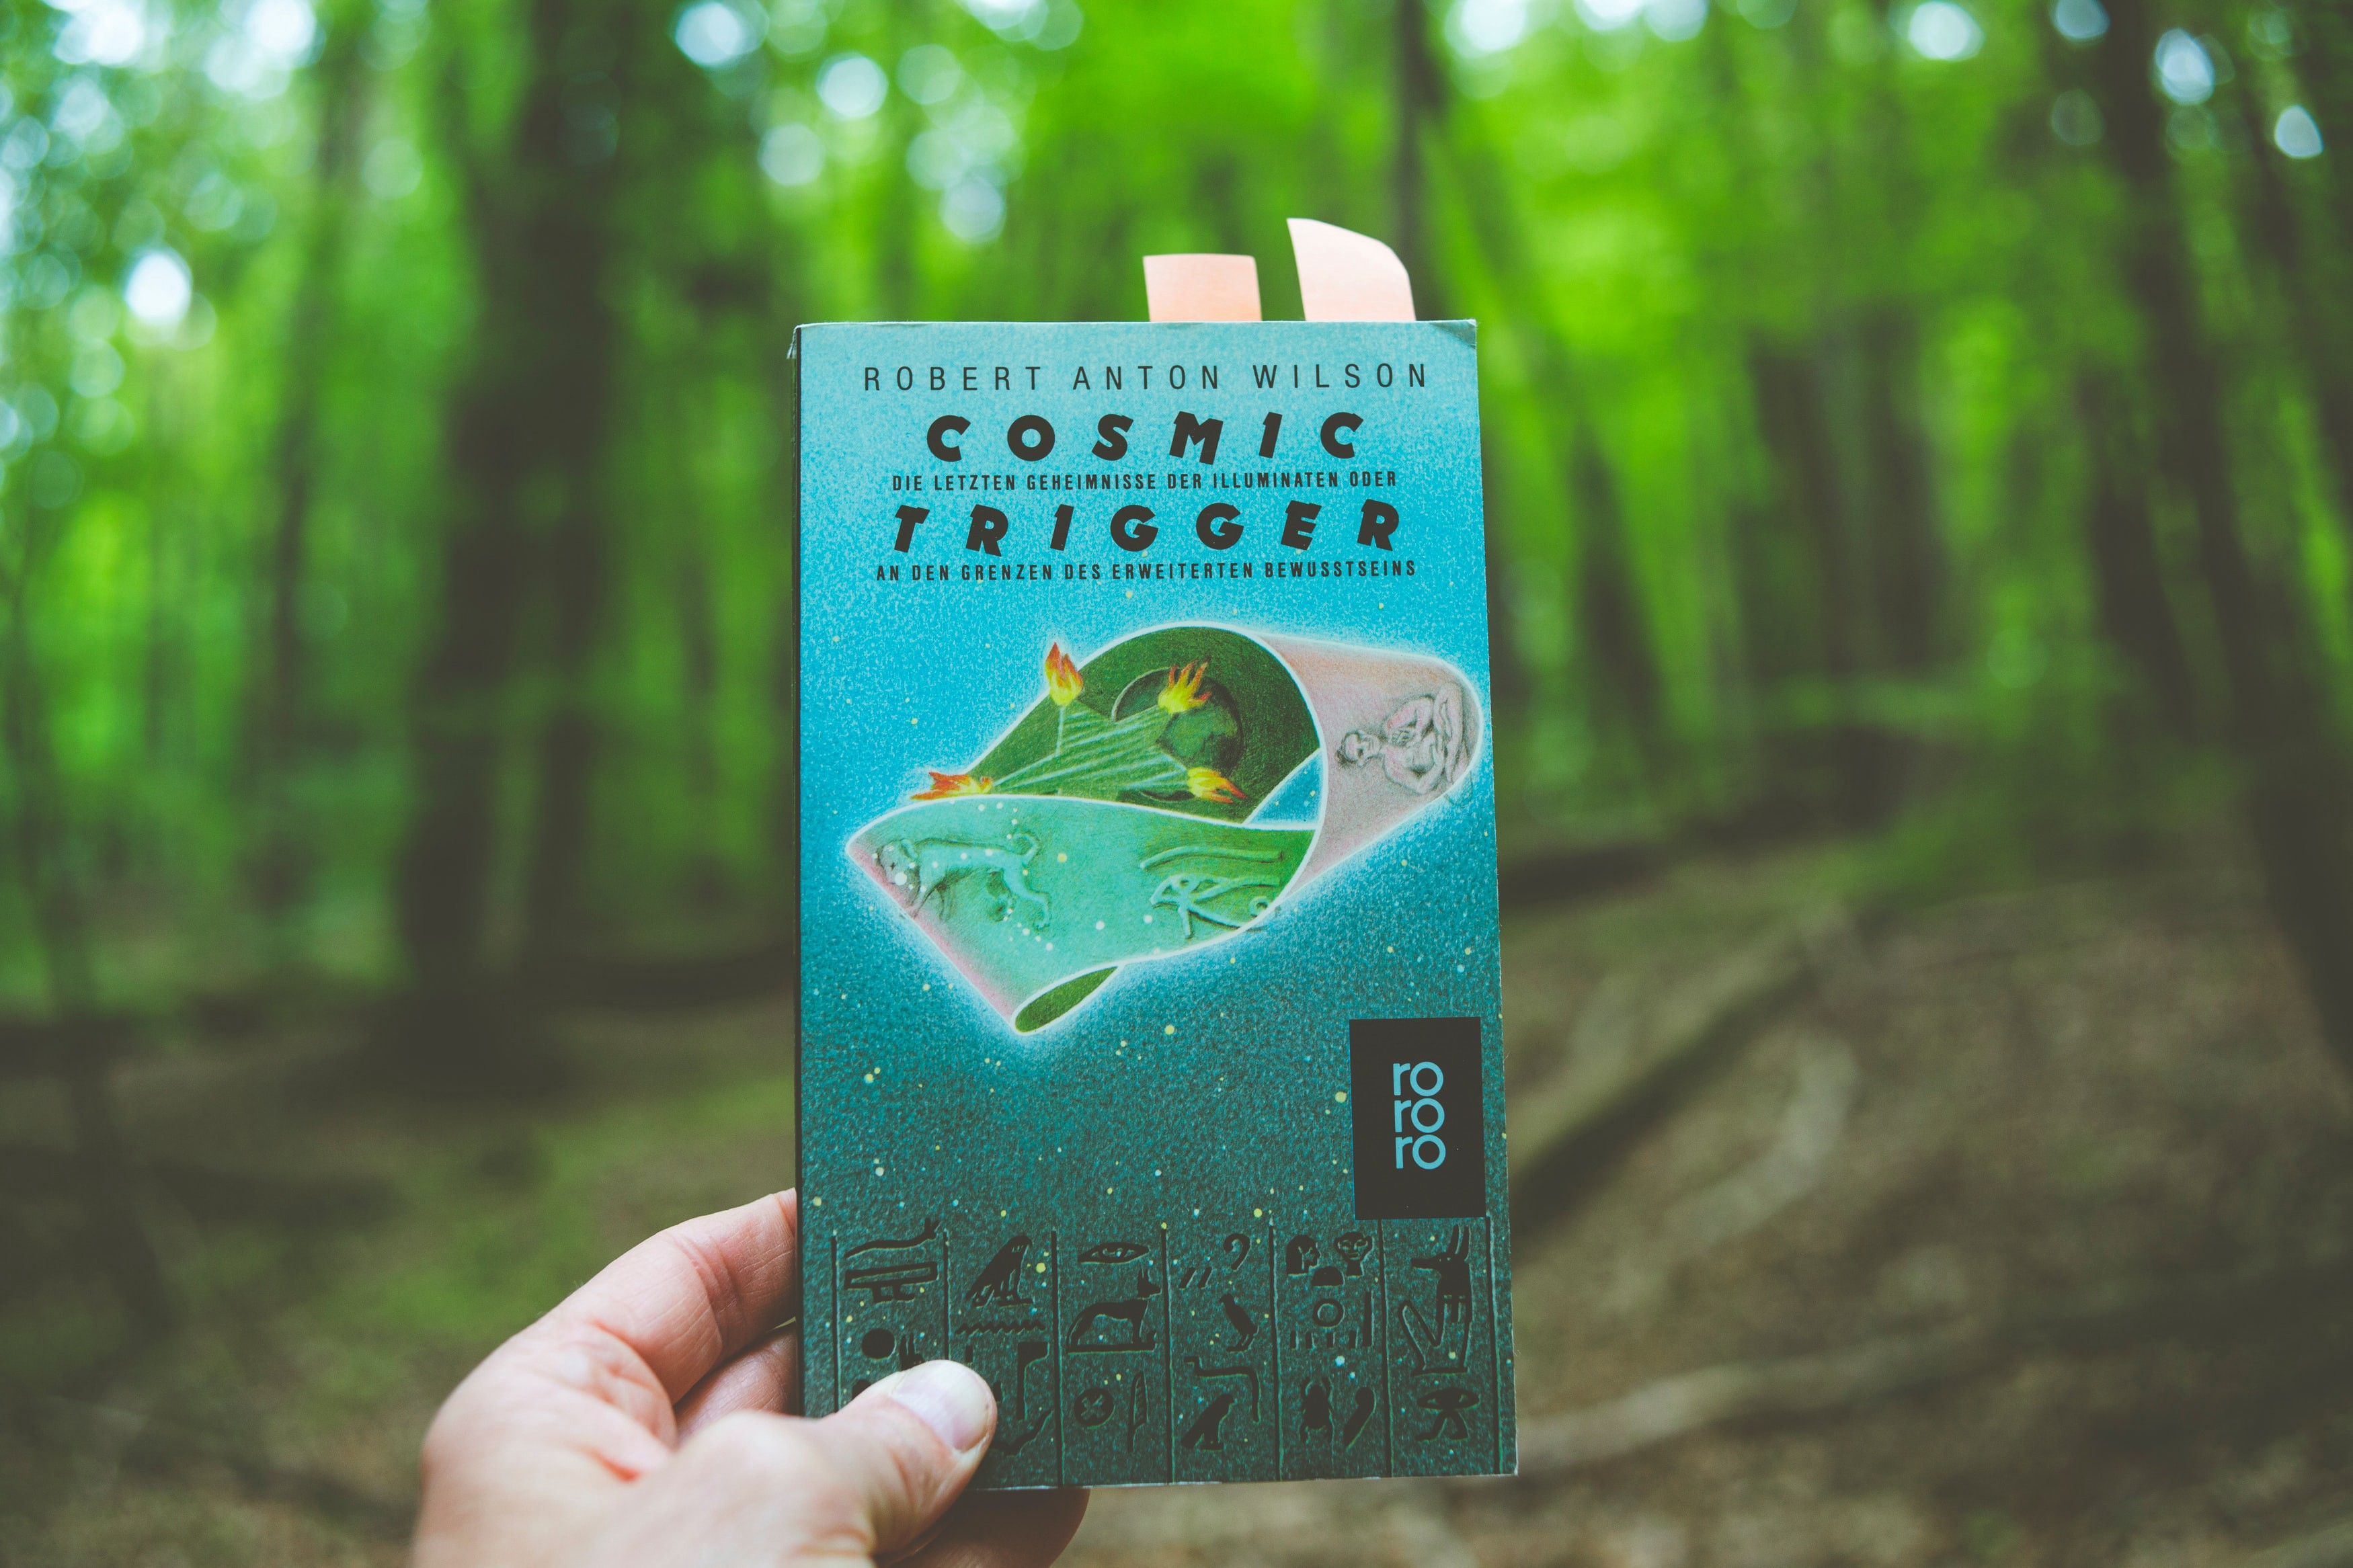 Photo by Markus Spiske on Unsplash, another book held up in the forest. Cosmic trigger